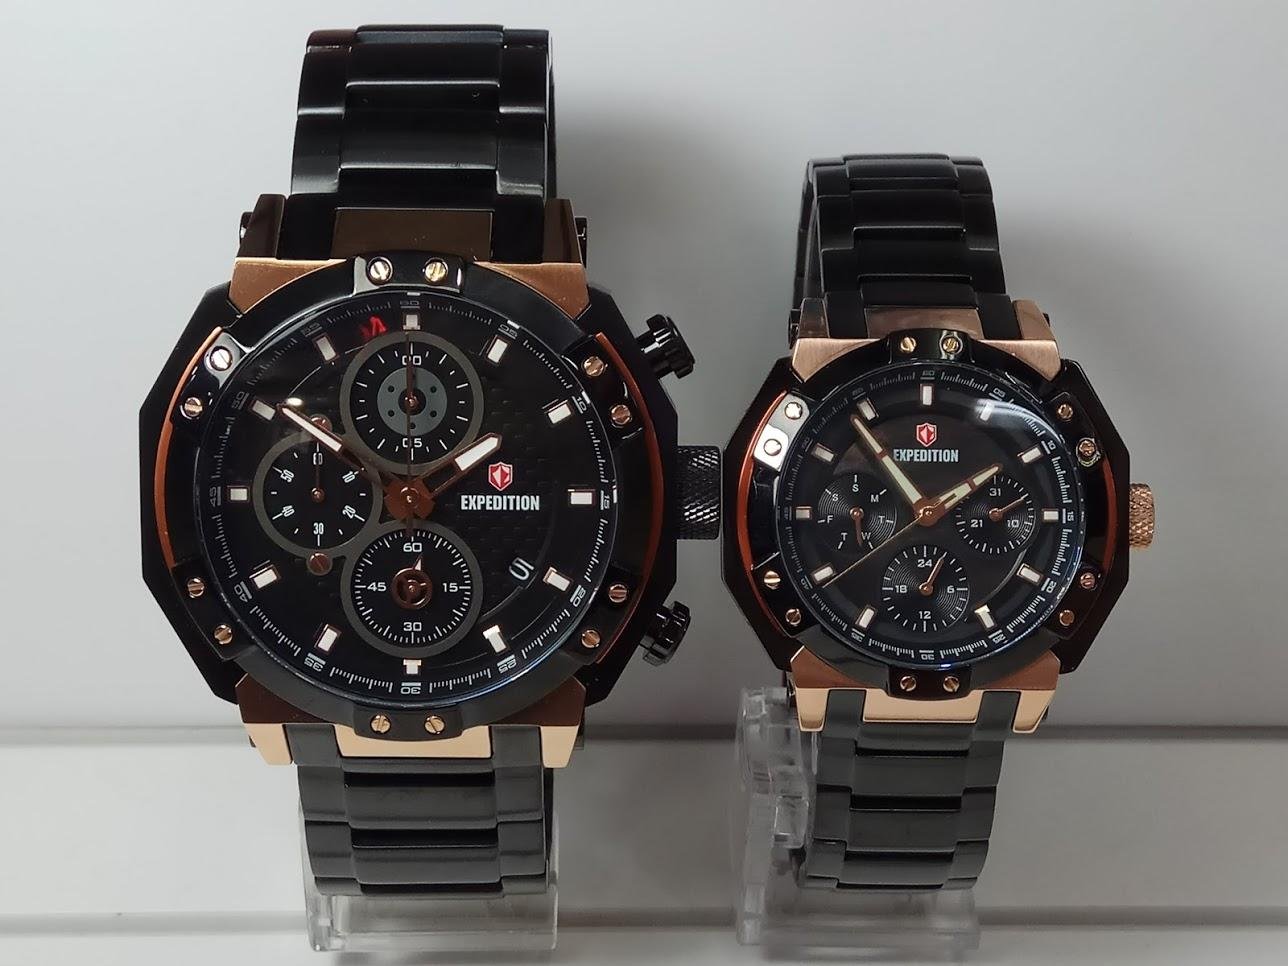 Expedition 6385 Couple Black Gold Garansi Resmi Daftar Harga E6385ld Silver White Jam Tangan E6385mc Bf Rosegold Stainless Steel